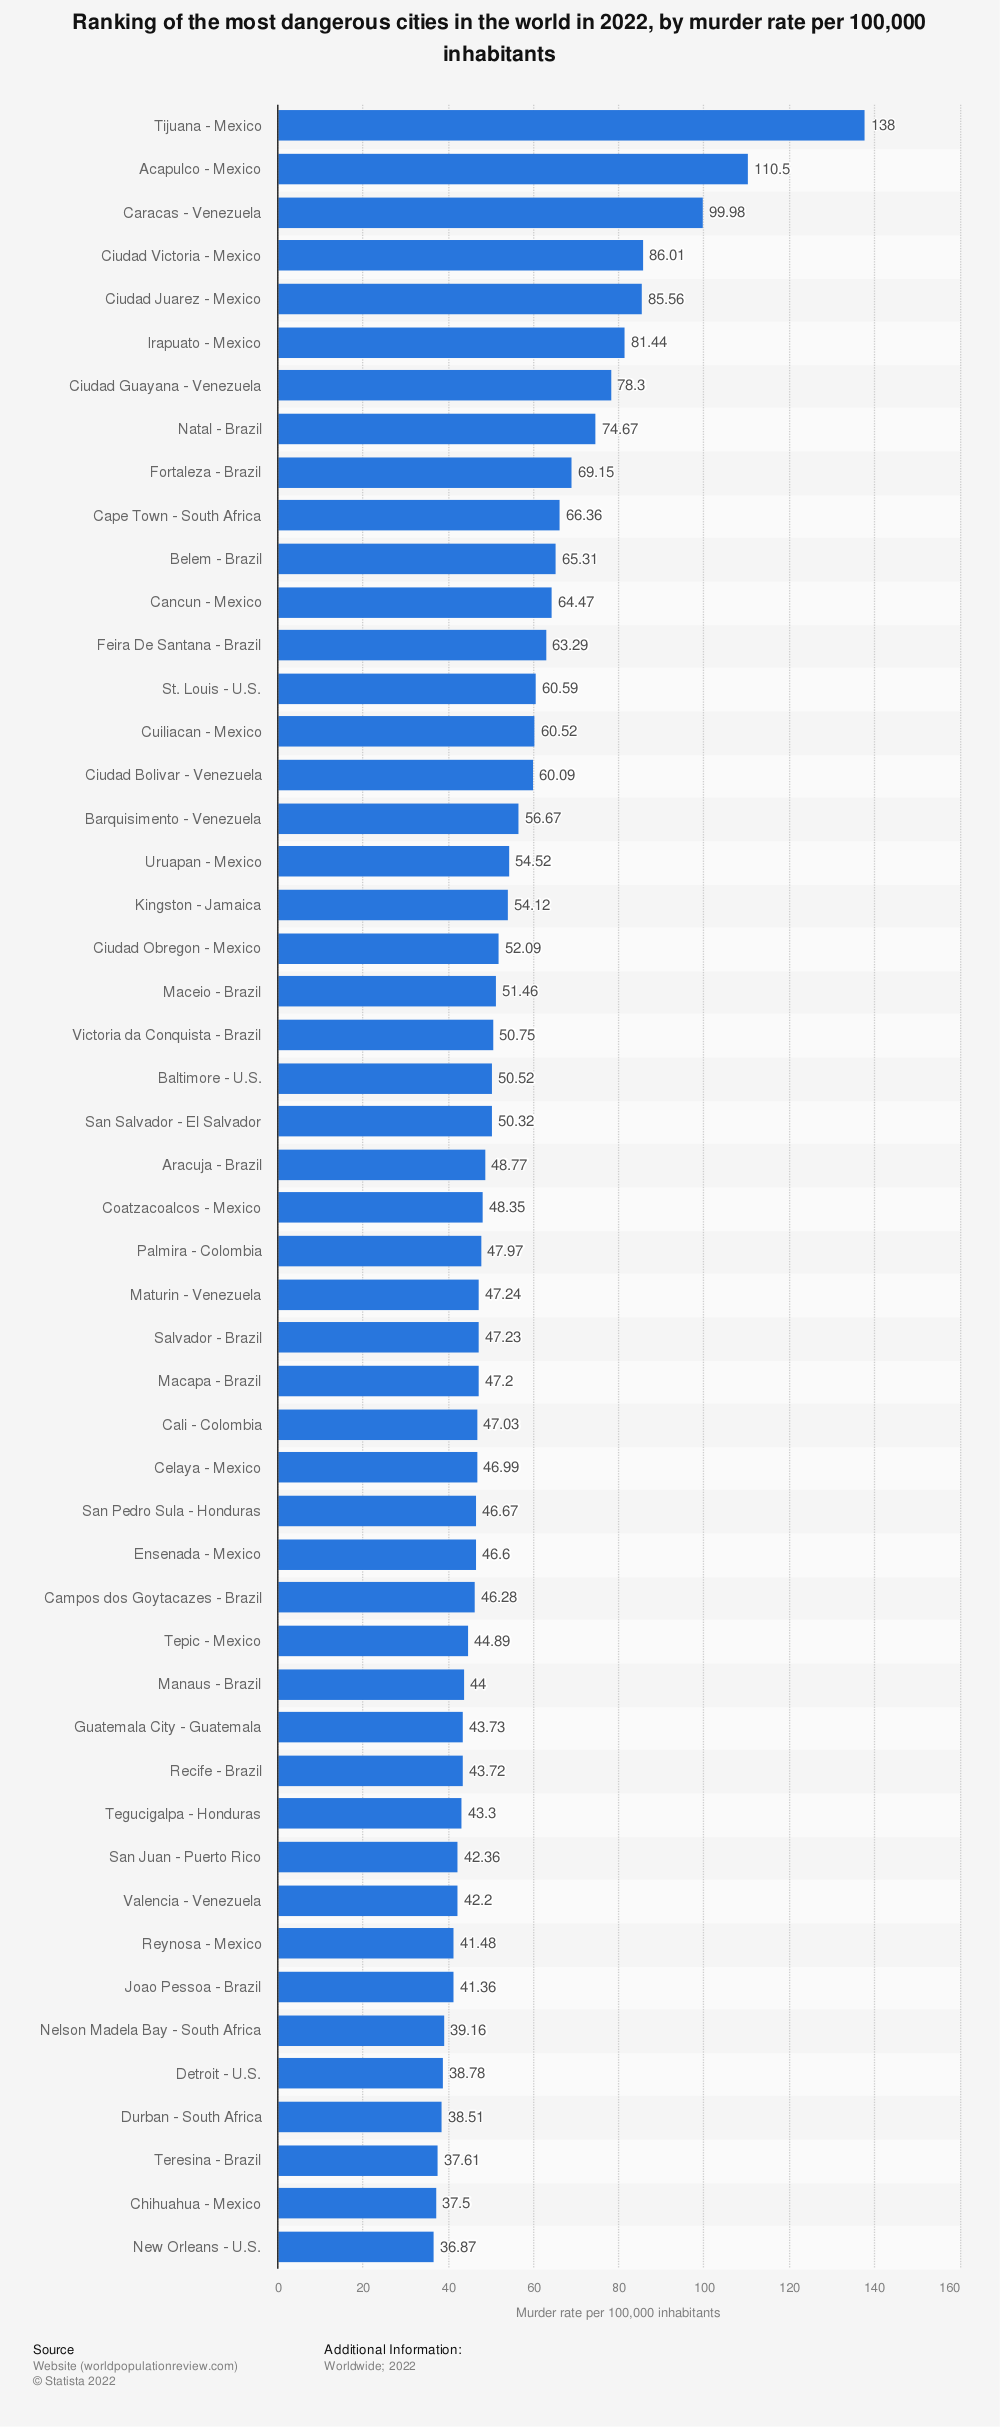 Statistic: Ranking of the most dangerous cities in the world in 2013, by murder rate per capita | Statista